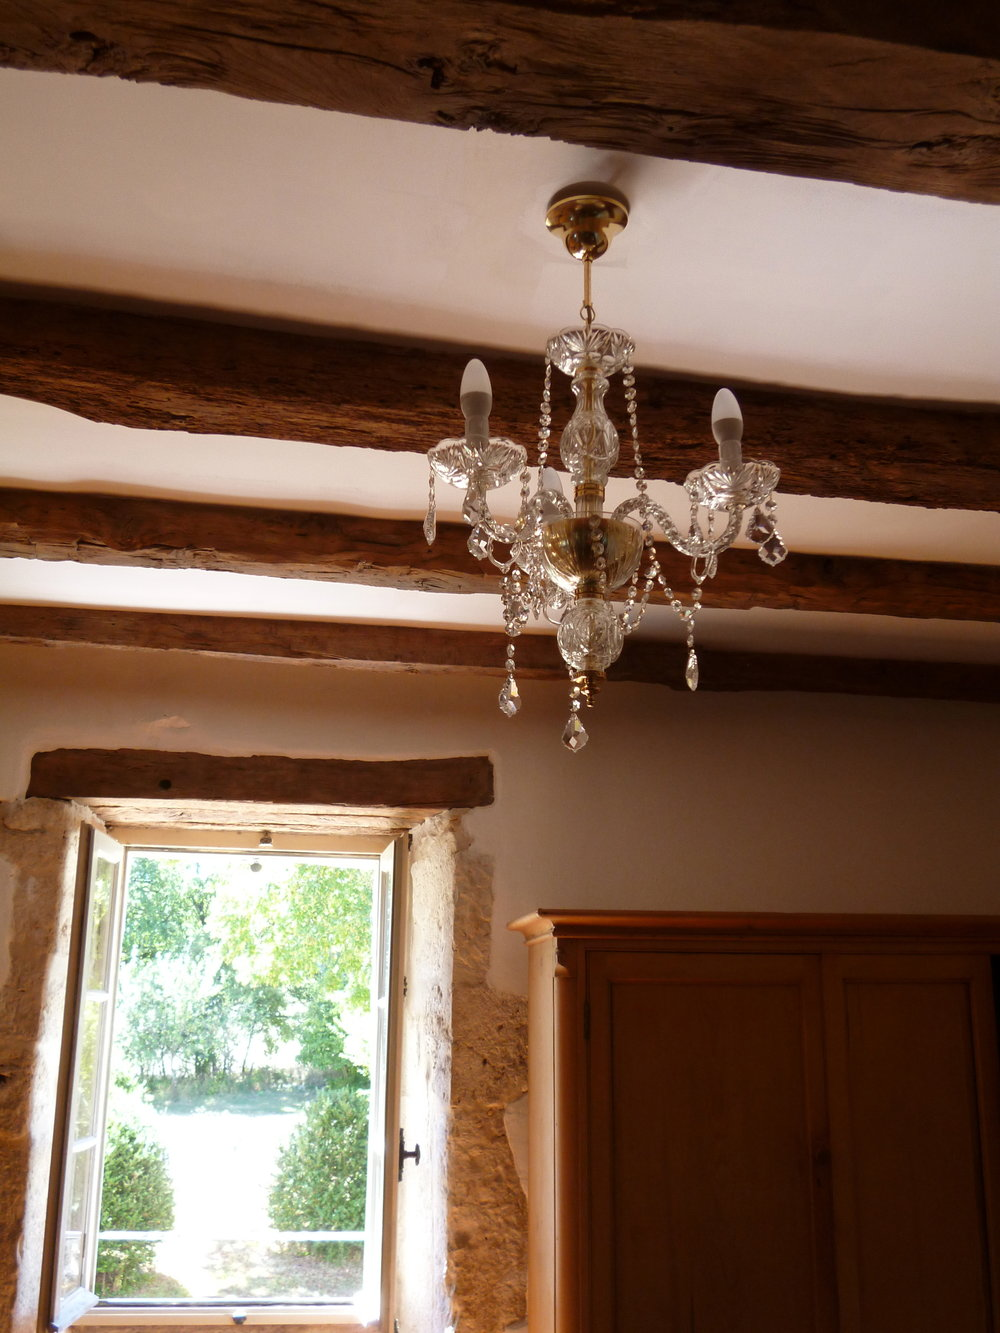 Clean beams and chandeliers!